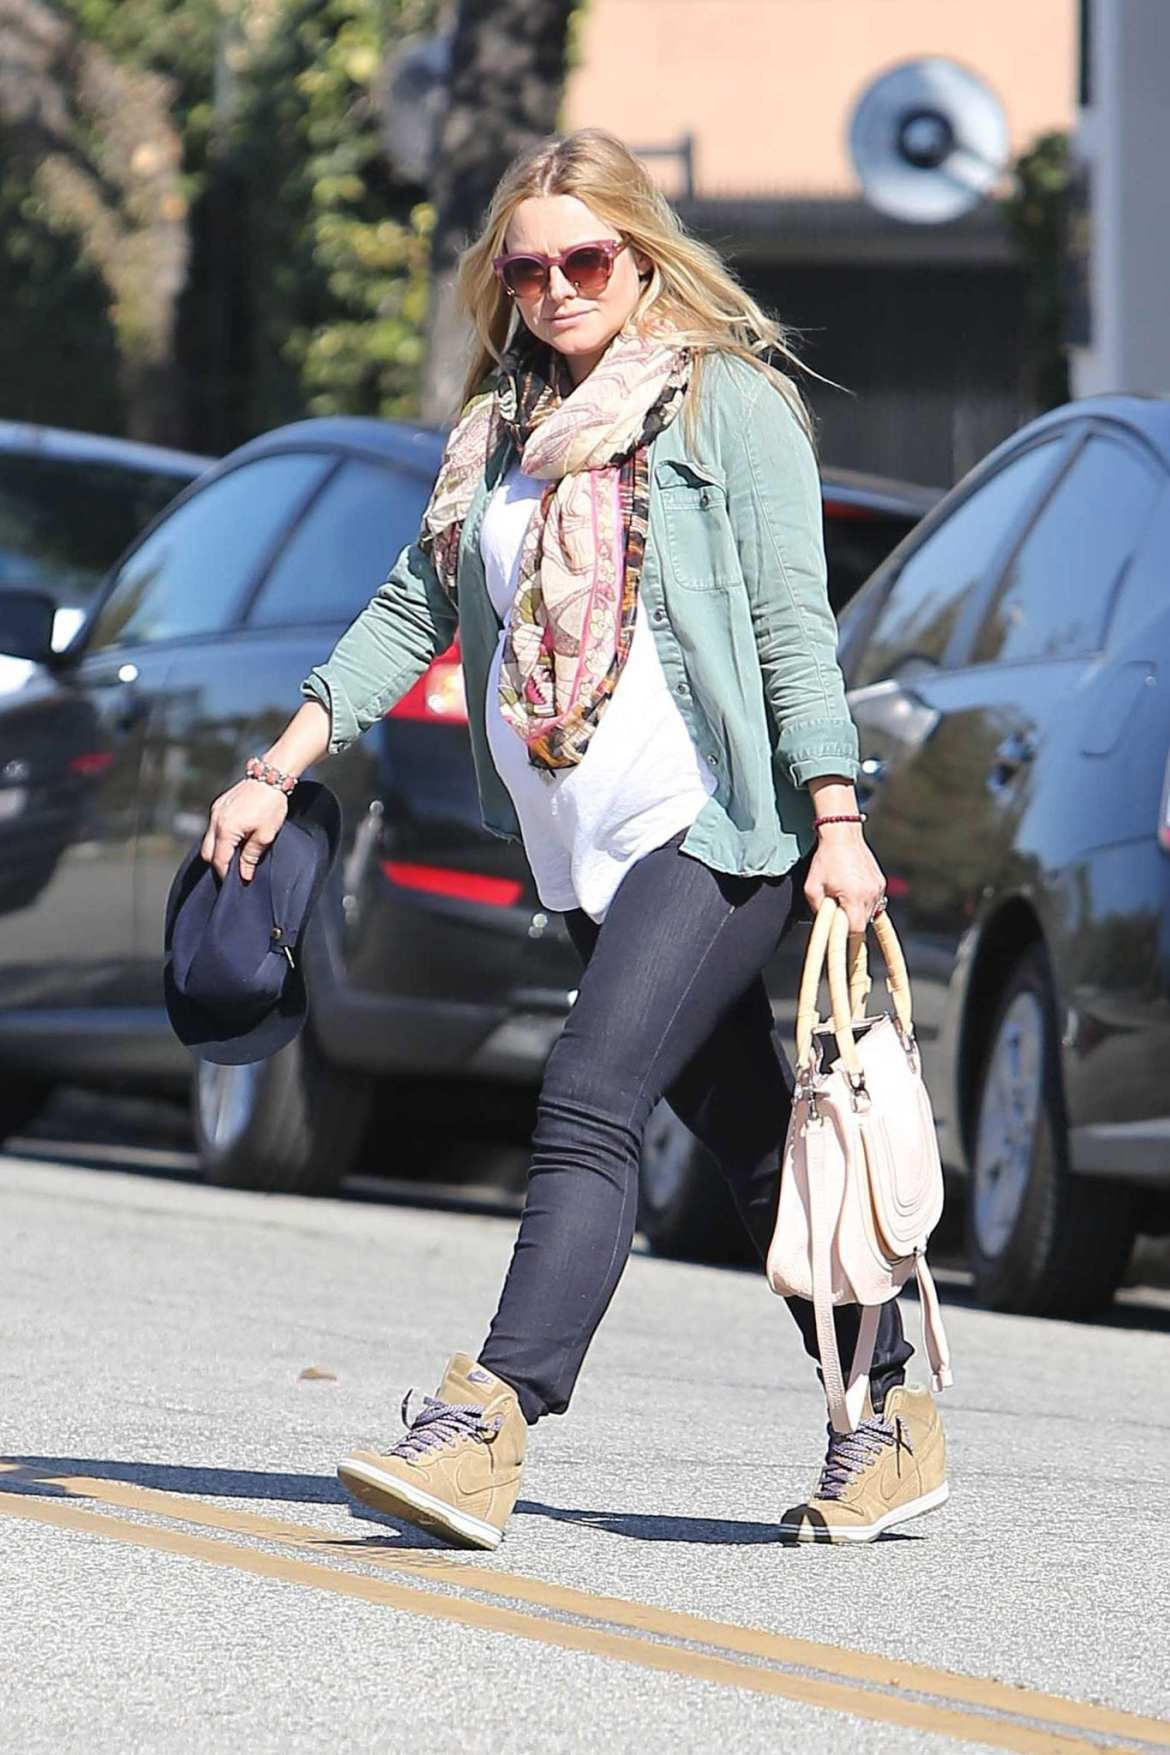 Kristen Bell takes her big Baby Bump to the Salon